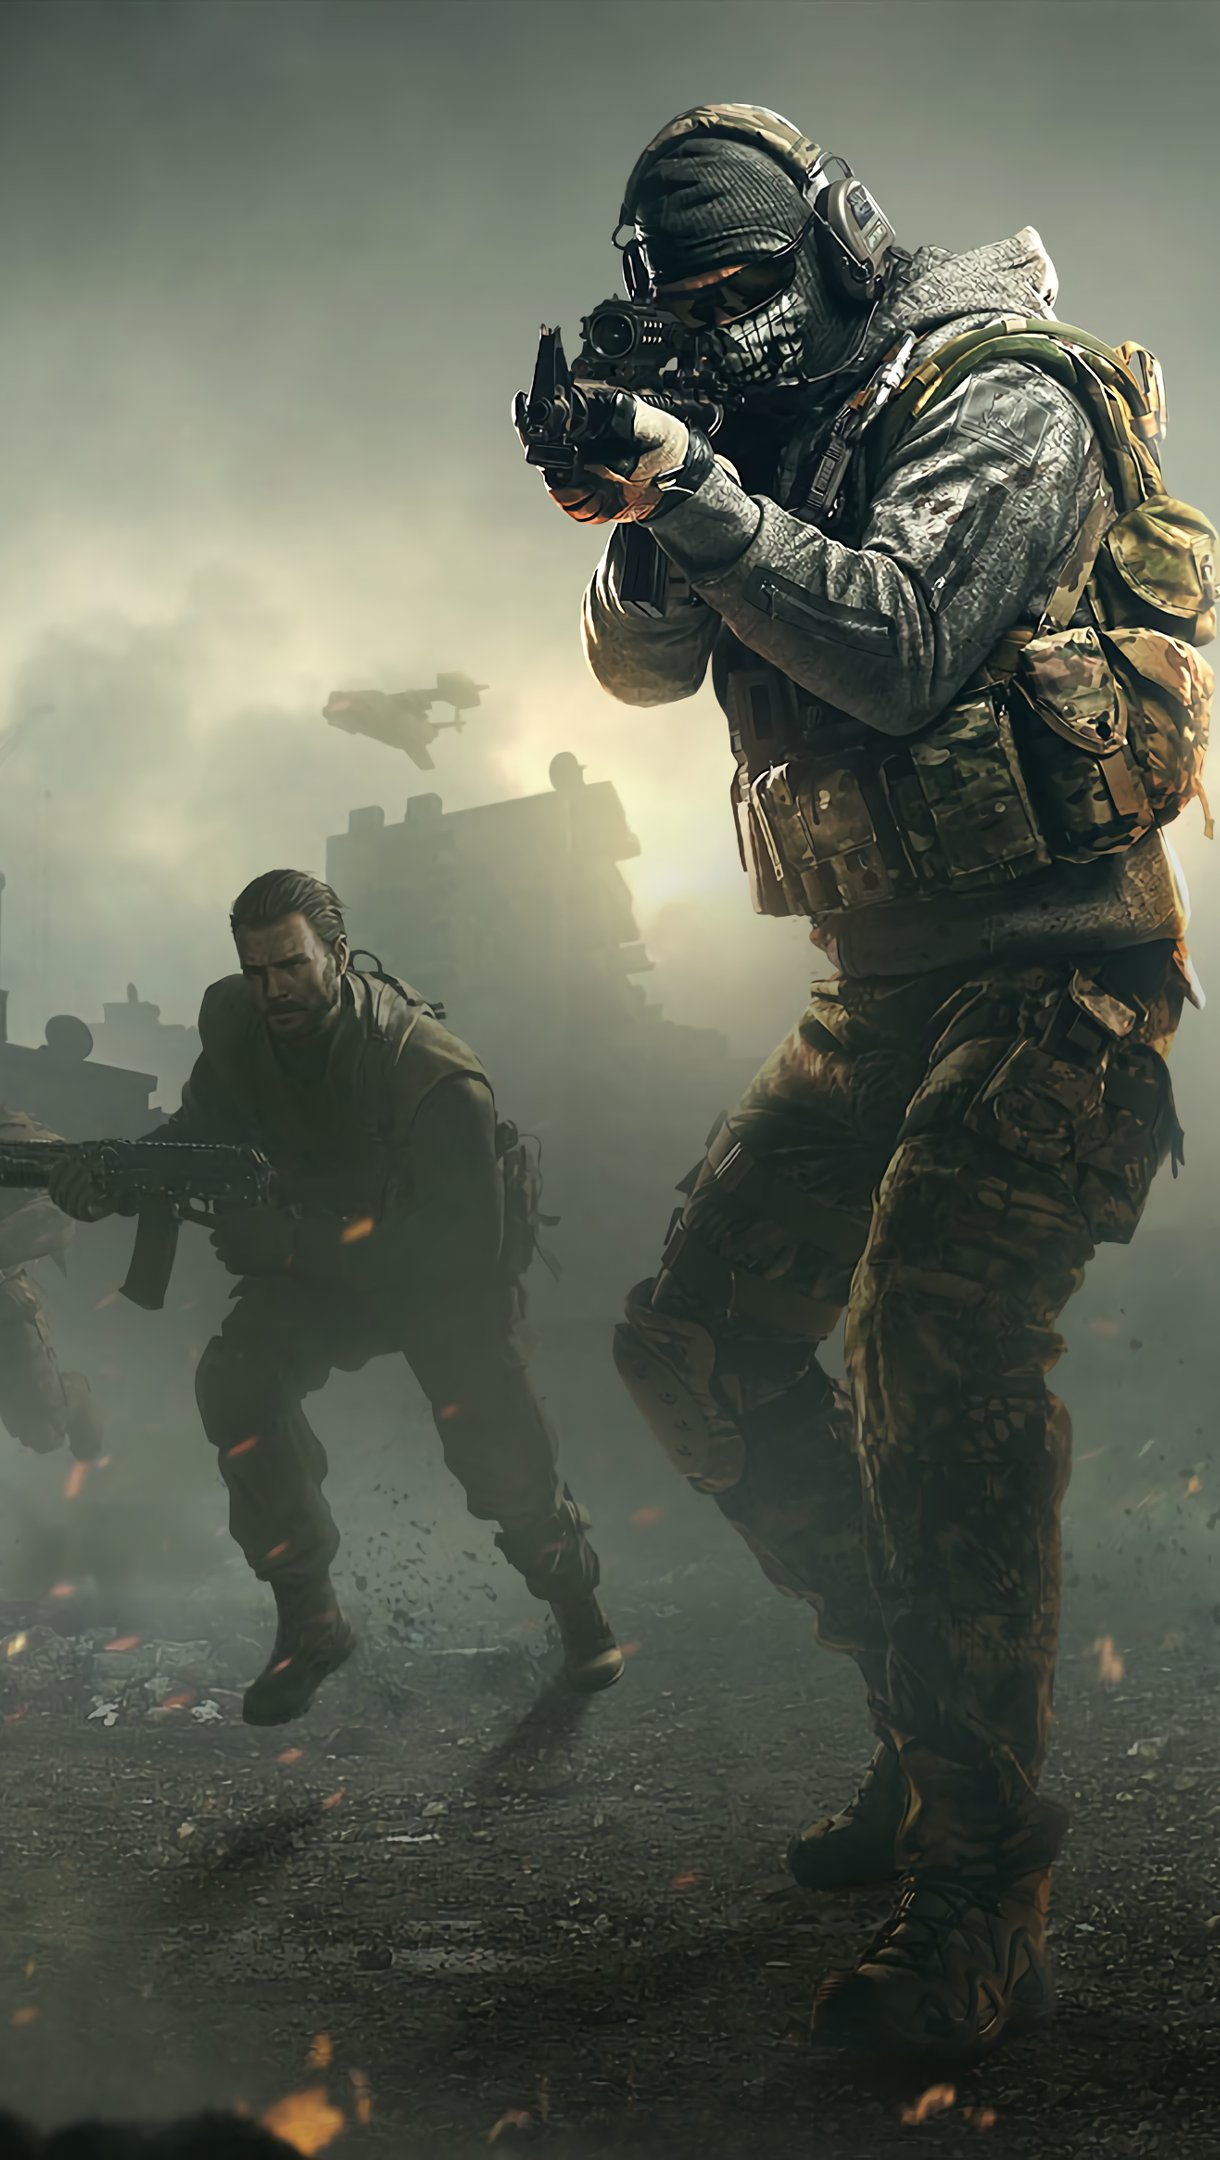 Fondos de pantalla Call of Duty Mobile Vertical